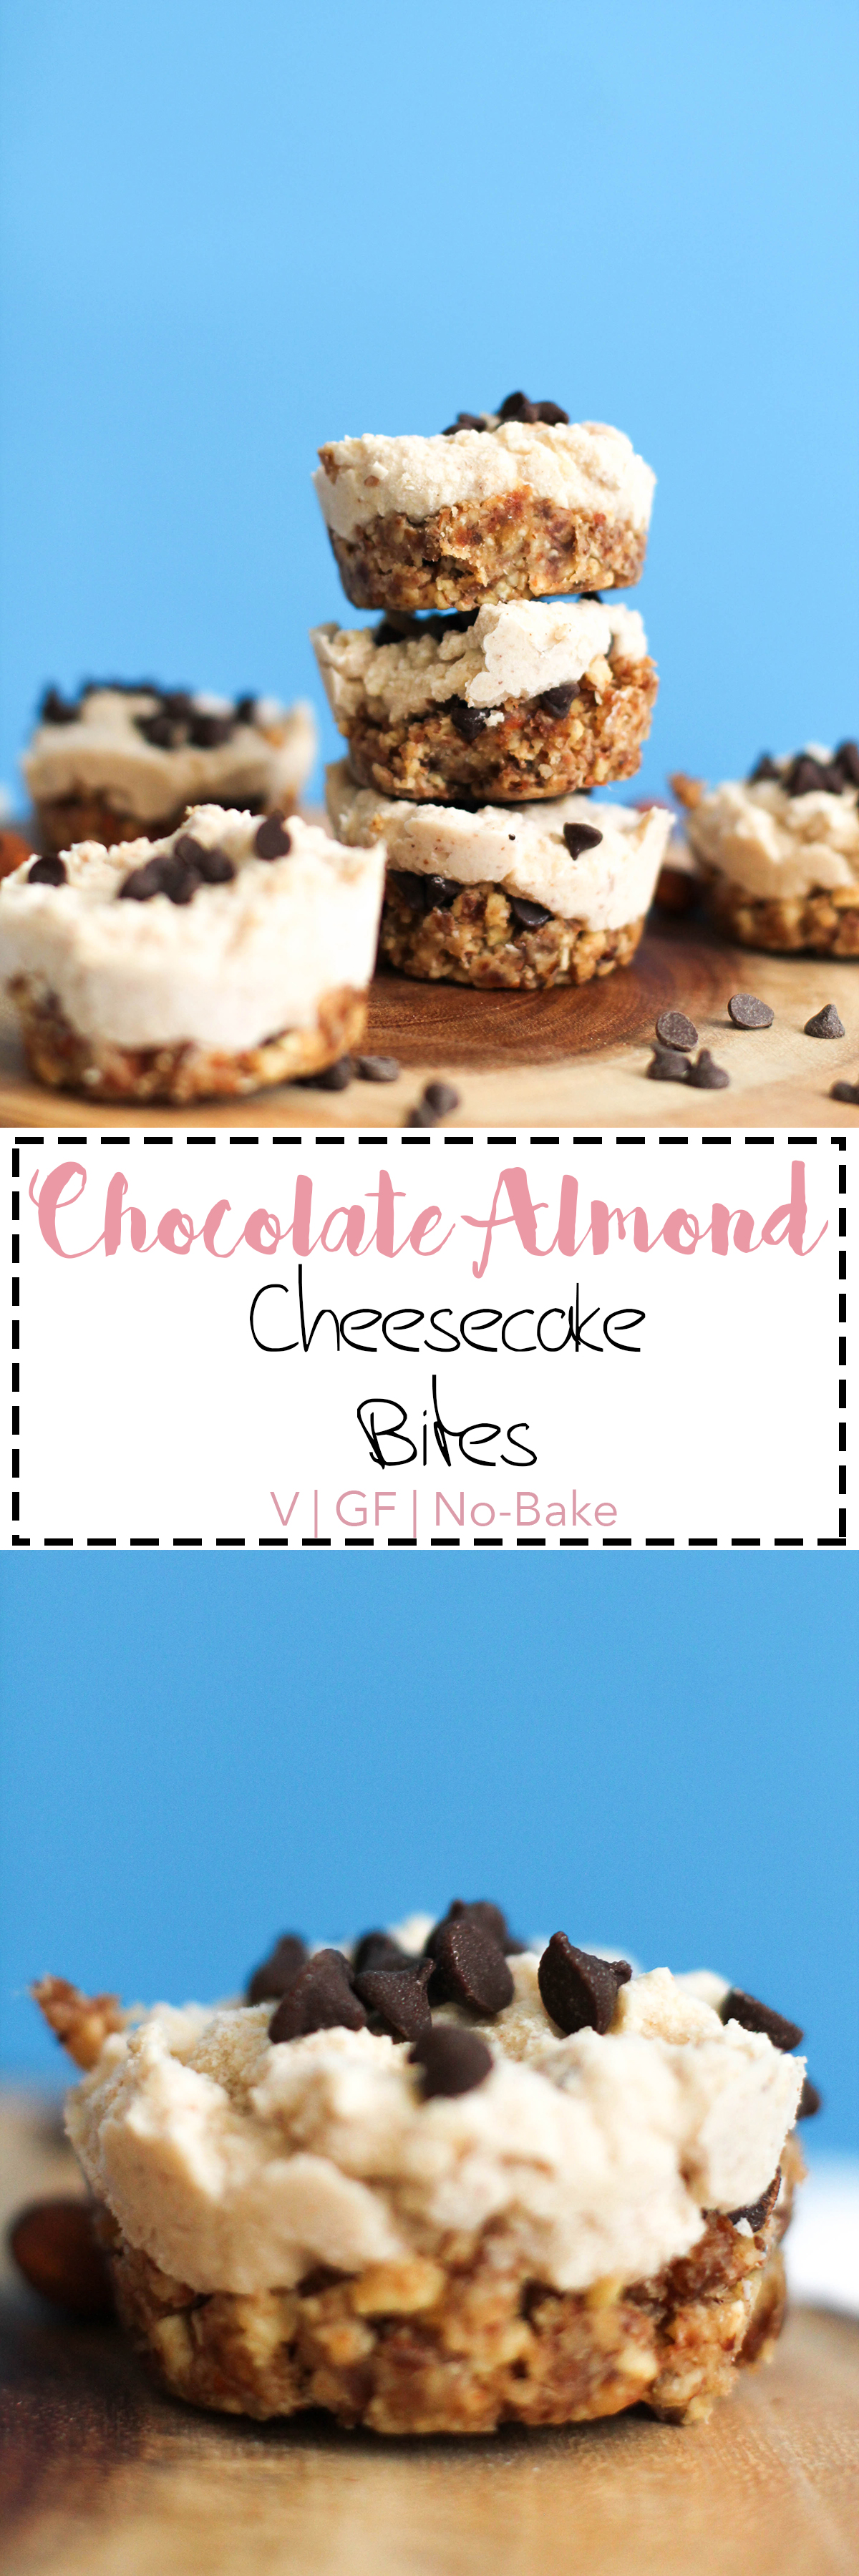 These chocolate almond cheesecake bites are the perfect dessert. They're no-bake, vegan, gluten free, refined sugar free, and absolutely delicious. Sweetened with dates, maple syrup, and loaded with flavor, these will satisfy anyone.